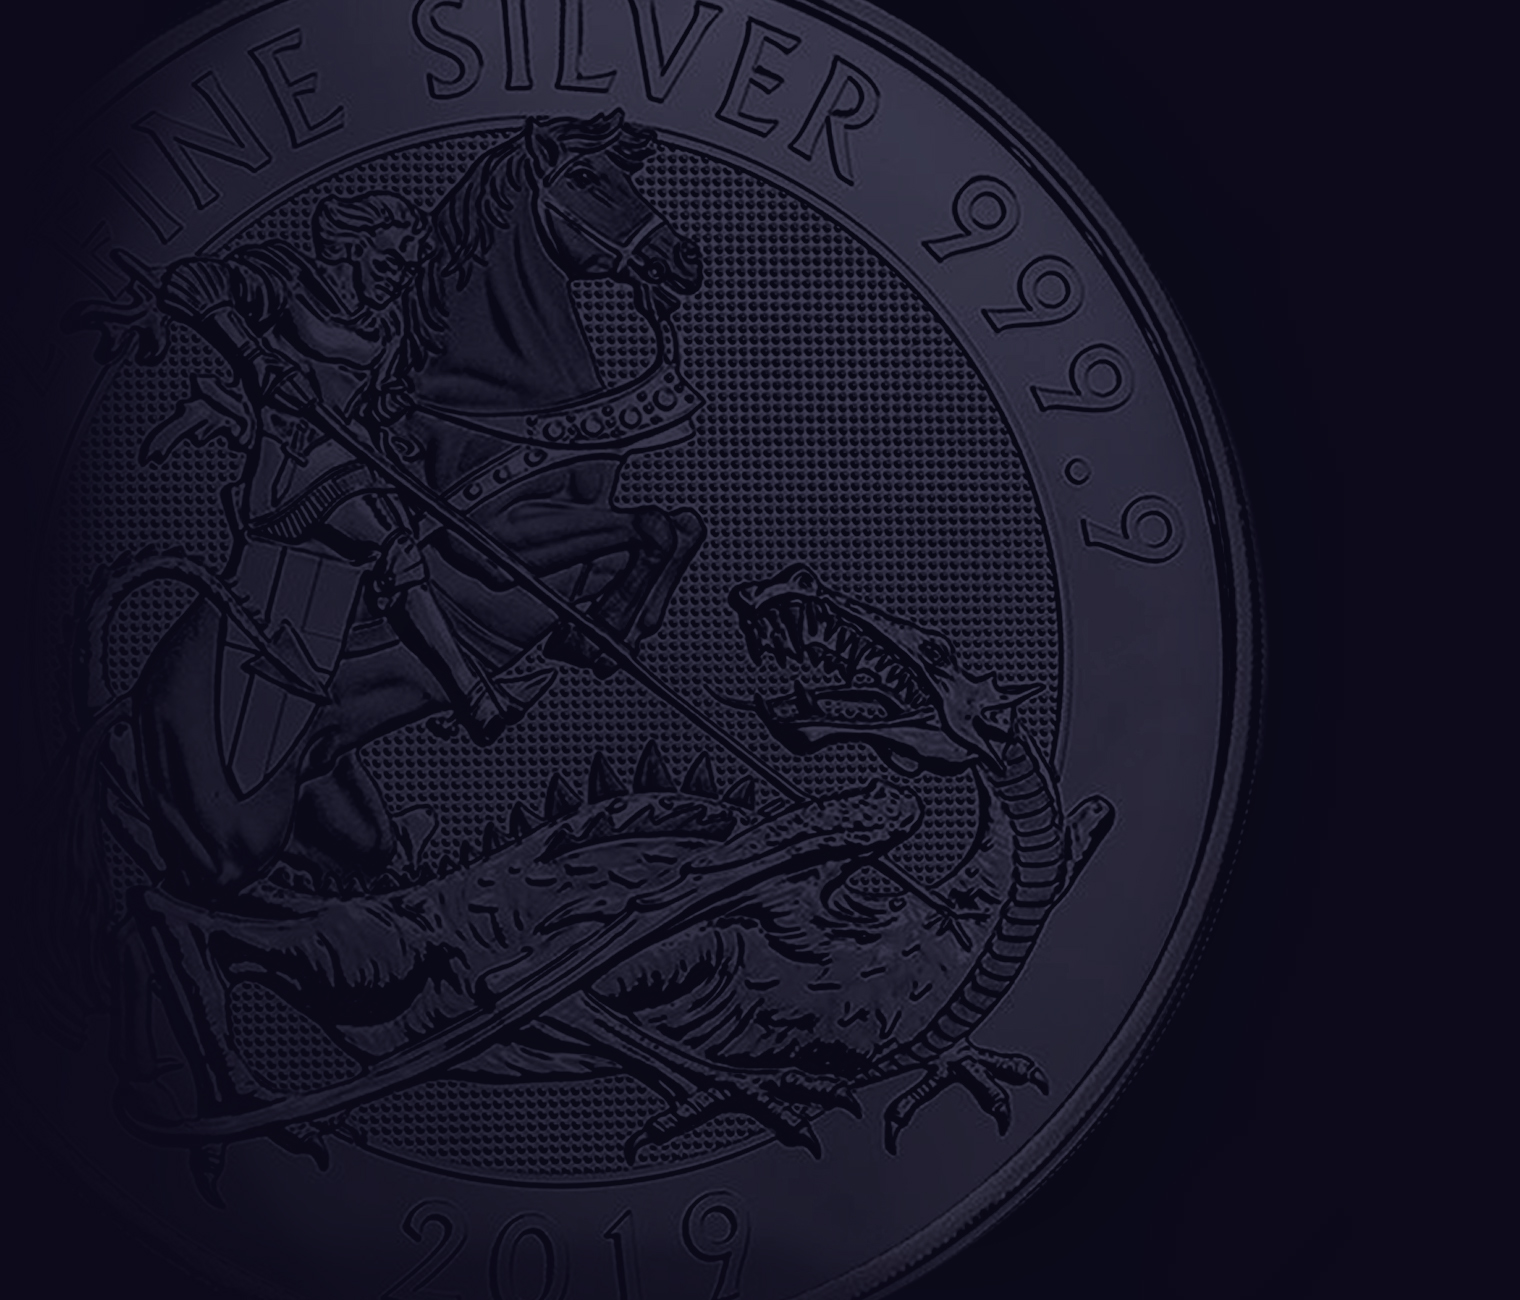 New Silver Coins